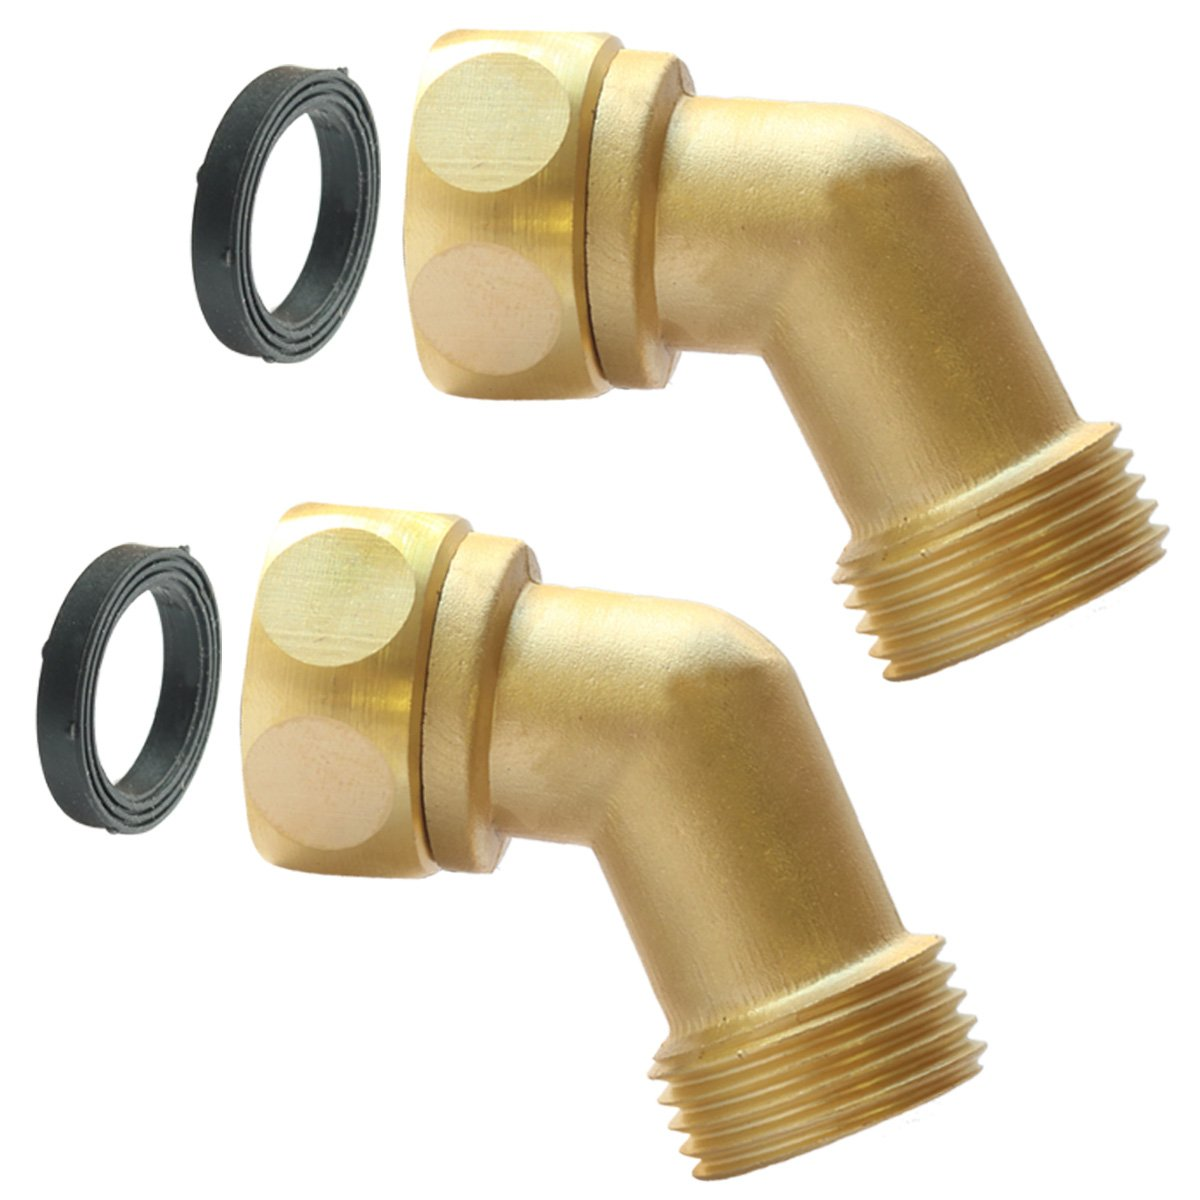 PLG Garden Hose Elbow Connector,45 Degree Hose Extender,Solid Brass Adapter